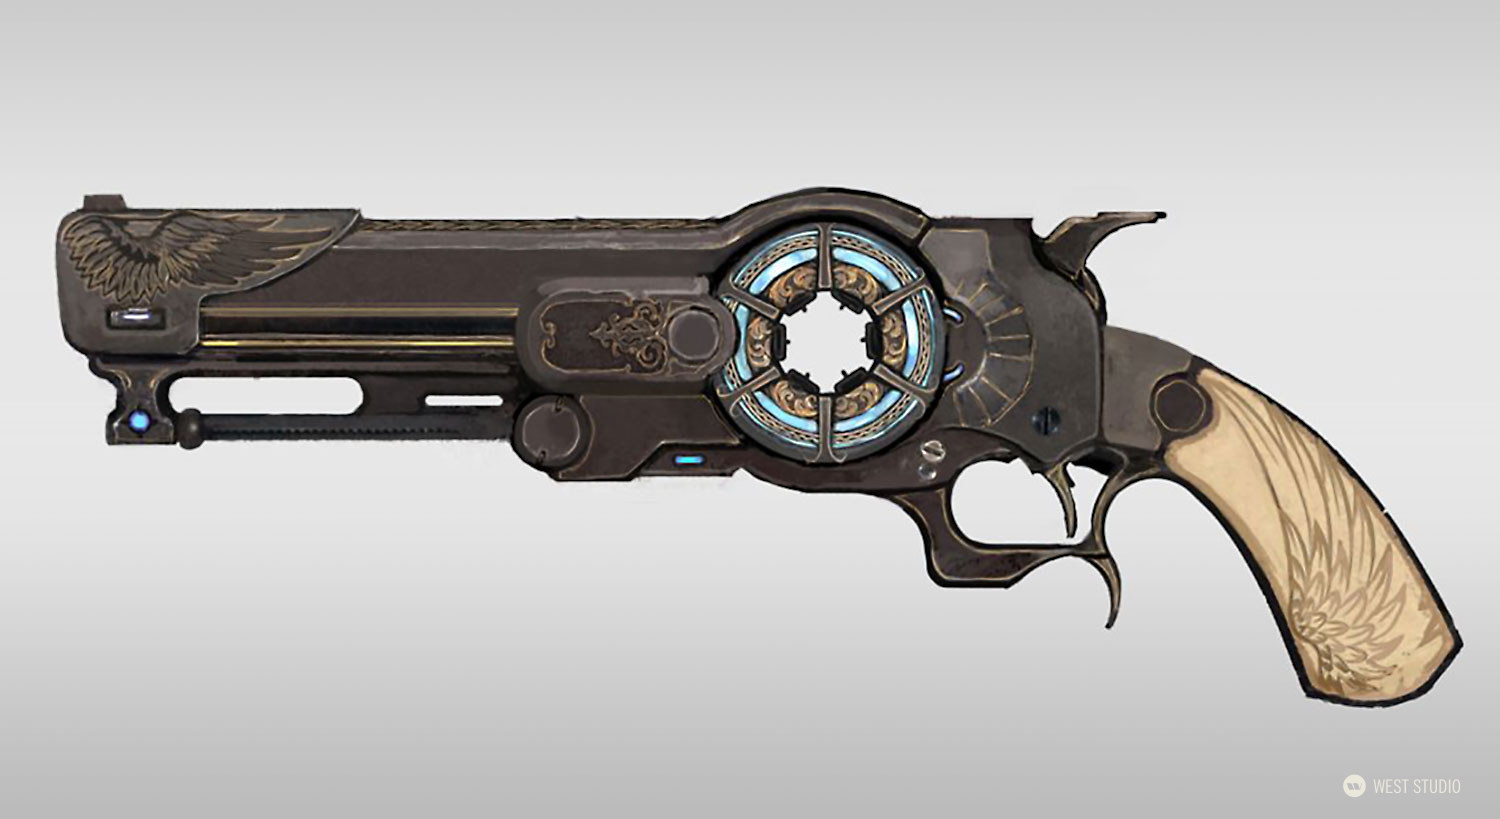 western, sci-fi, world building, props, VR, concept art, game development, weapon